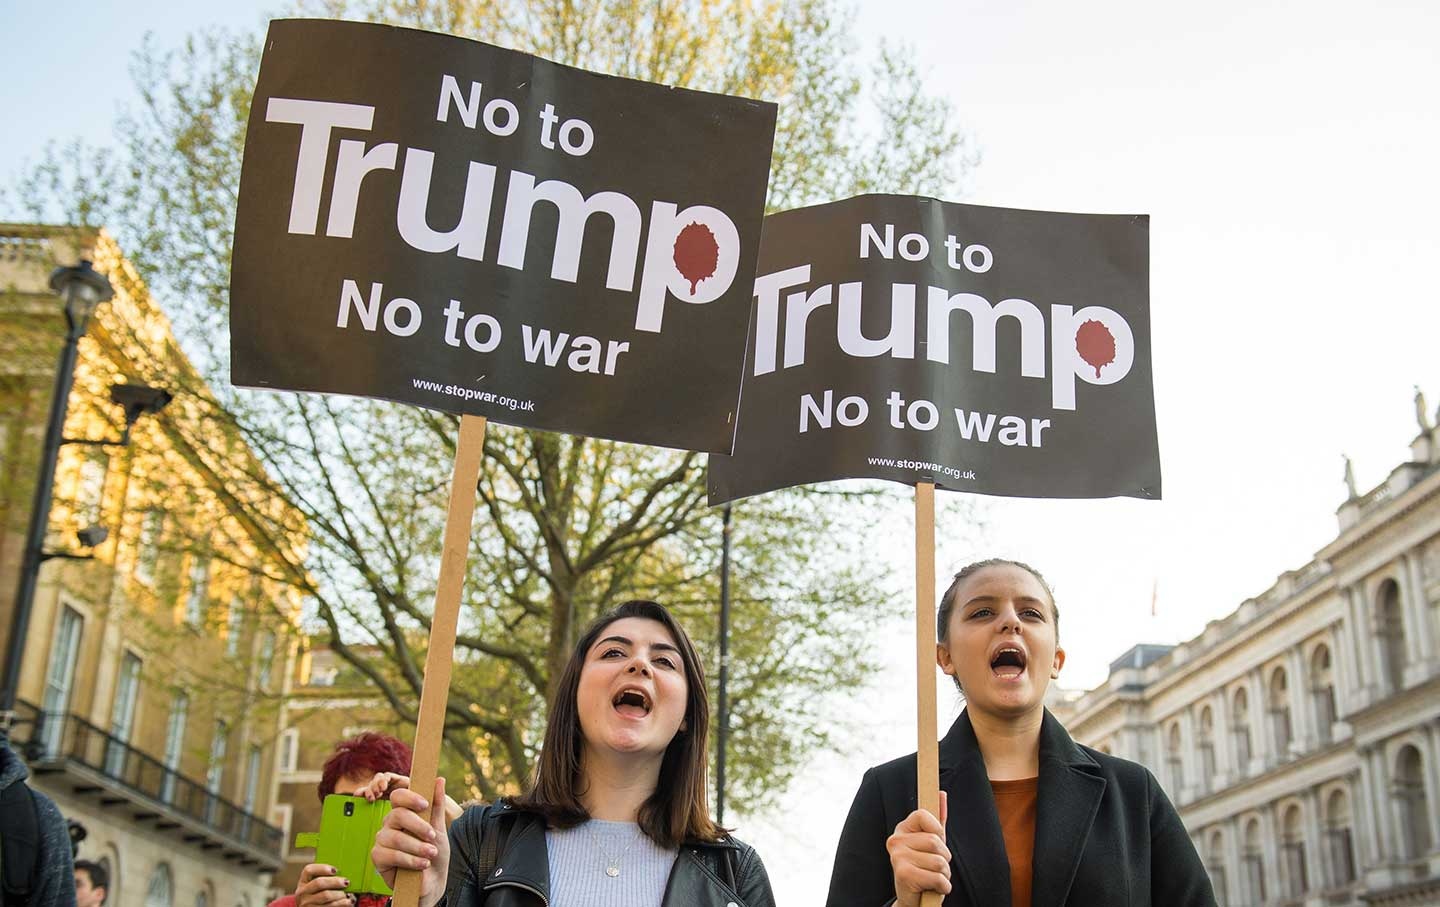 Syria demonstration. Protestors from the Stop the War Coalition take part in a demonstration outside Downing Street, in Westminster, London on Friday, April 7, 2017.